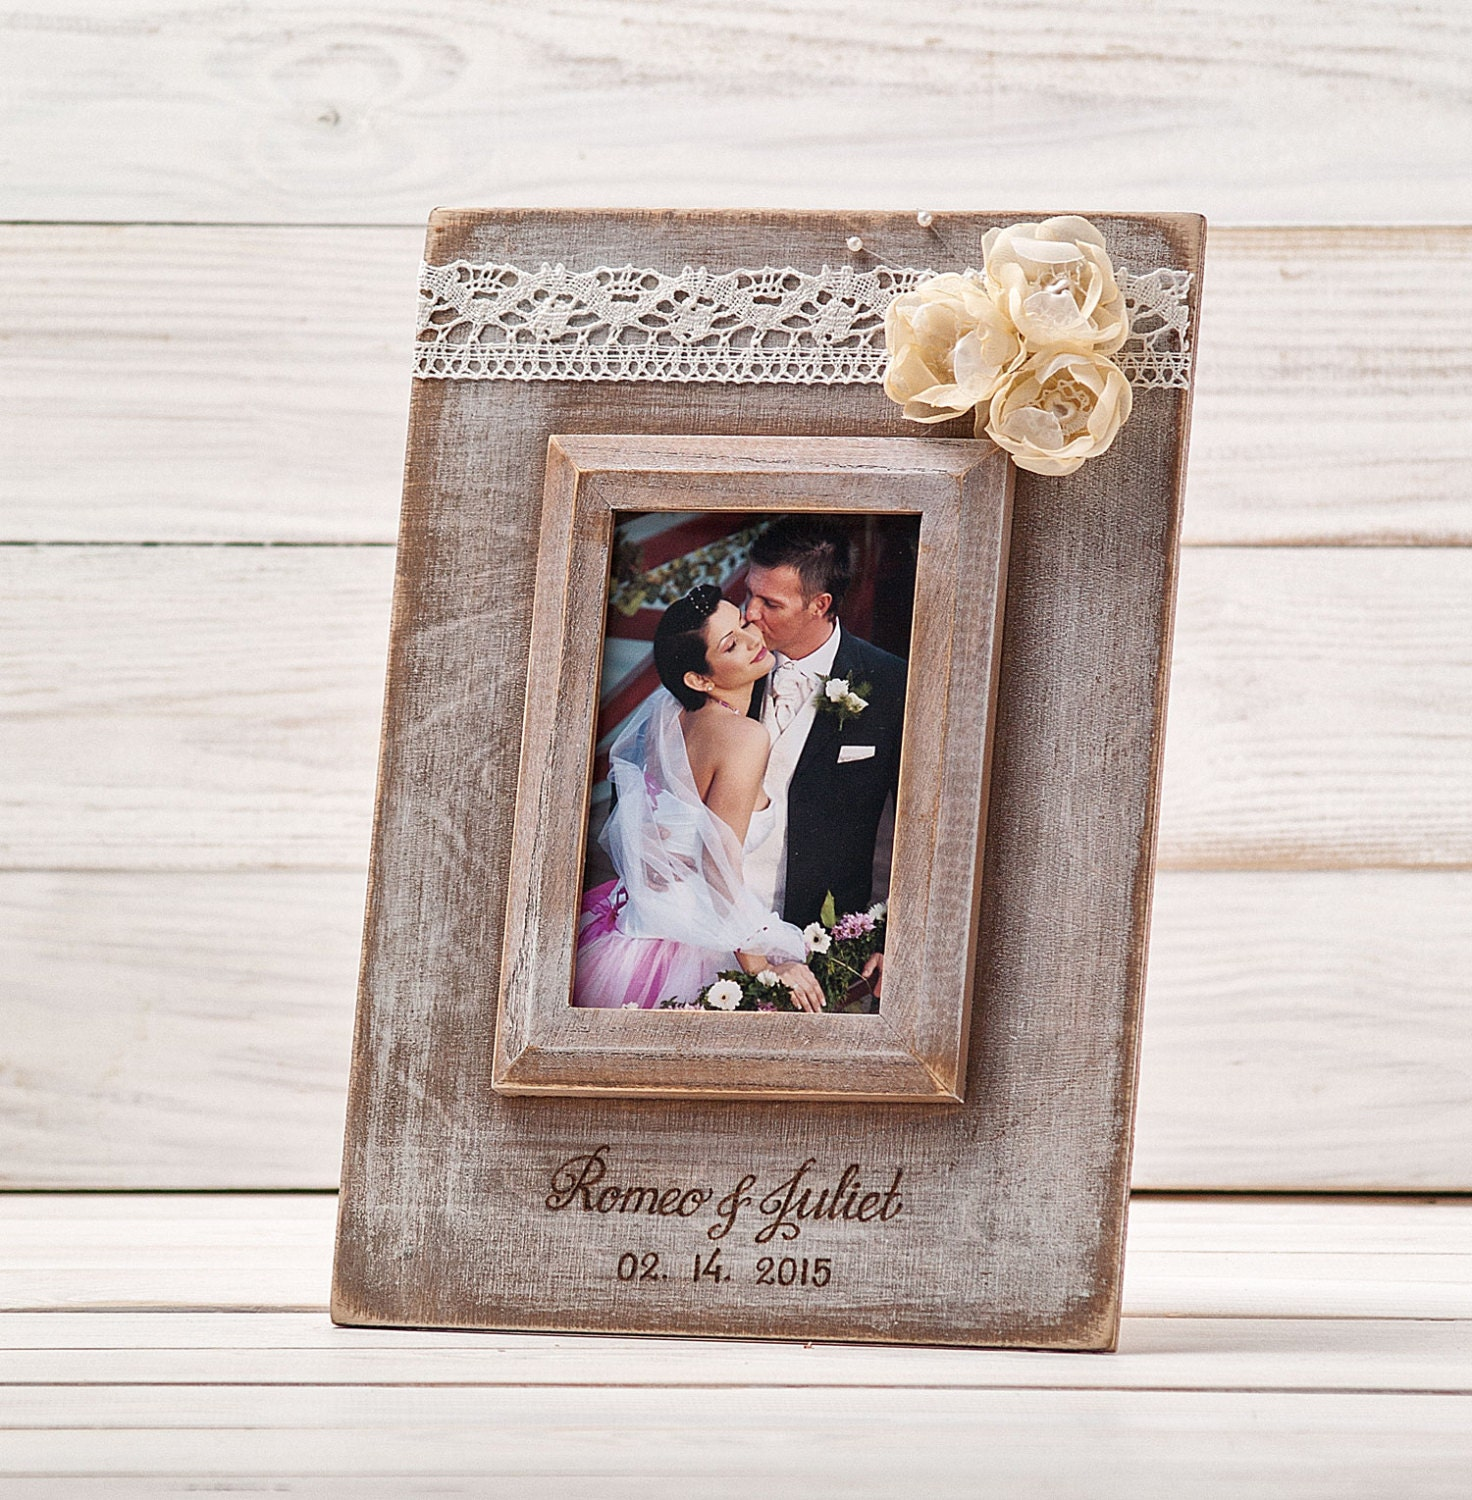 Wedding Photo Frames: Personalized Wedding Frame Rustic Wedding Picture Photo Frame